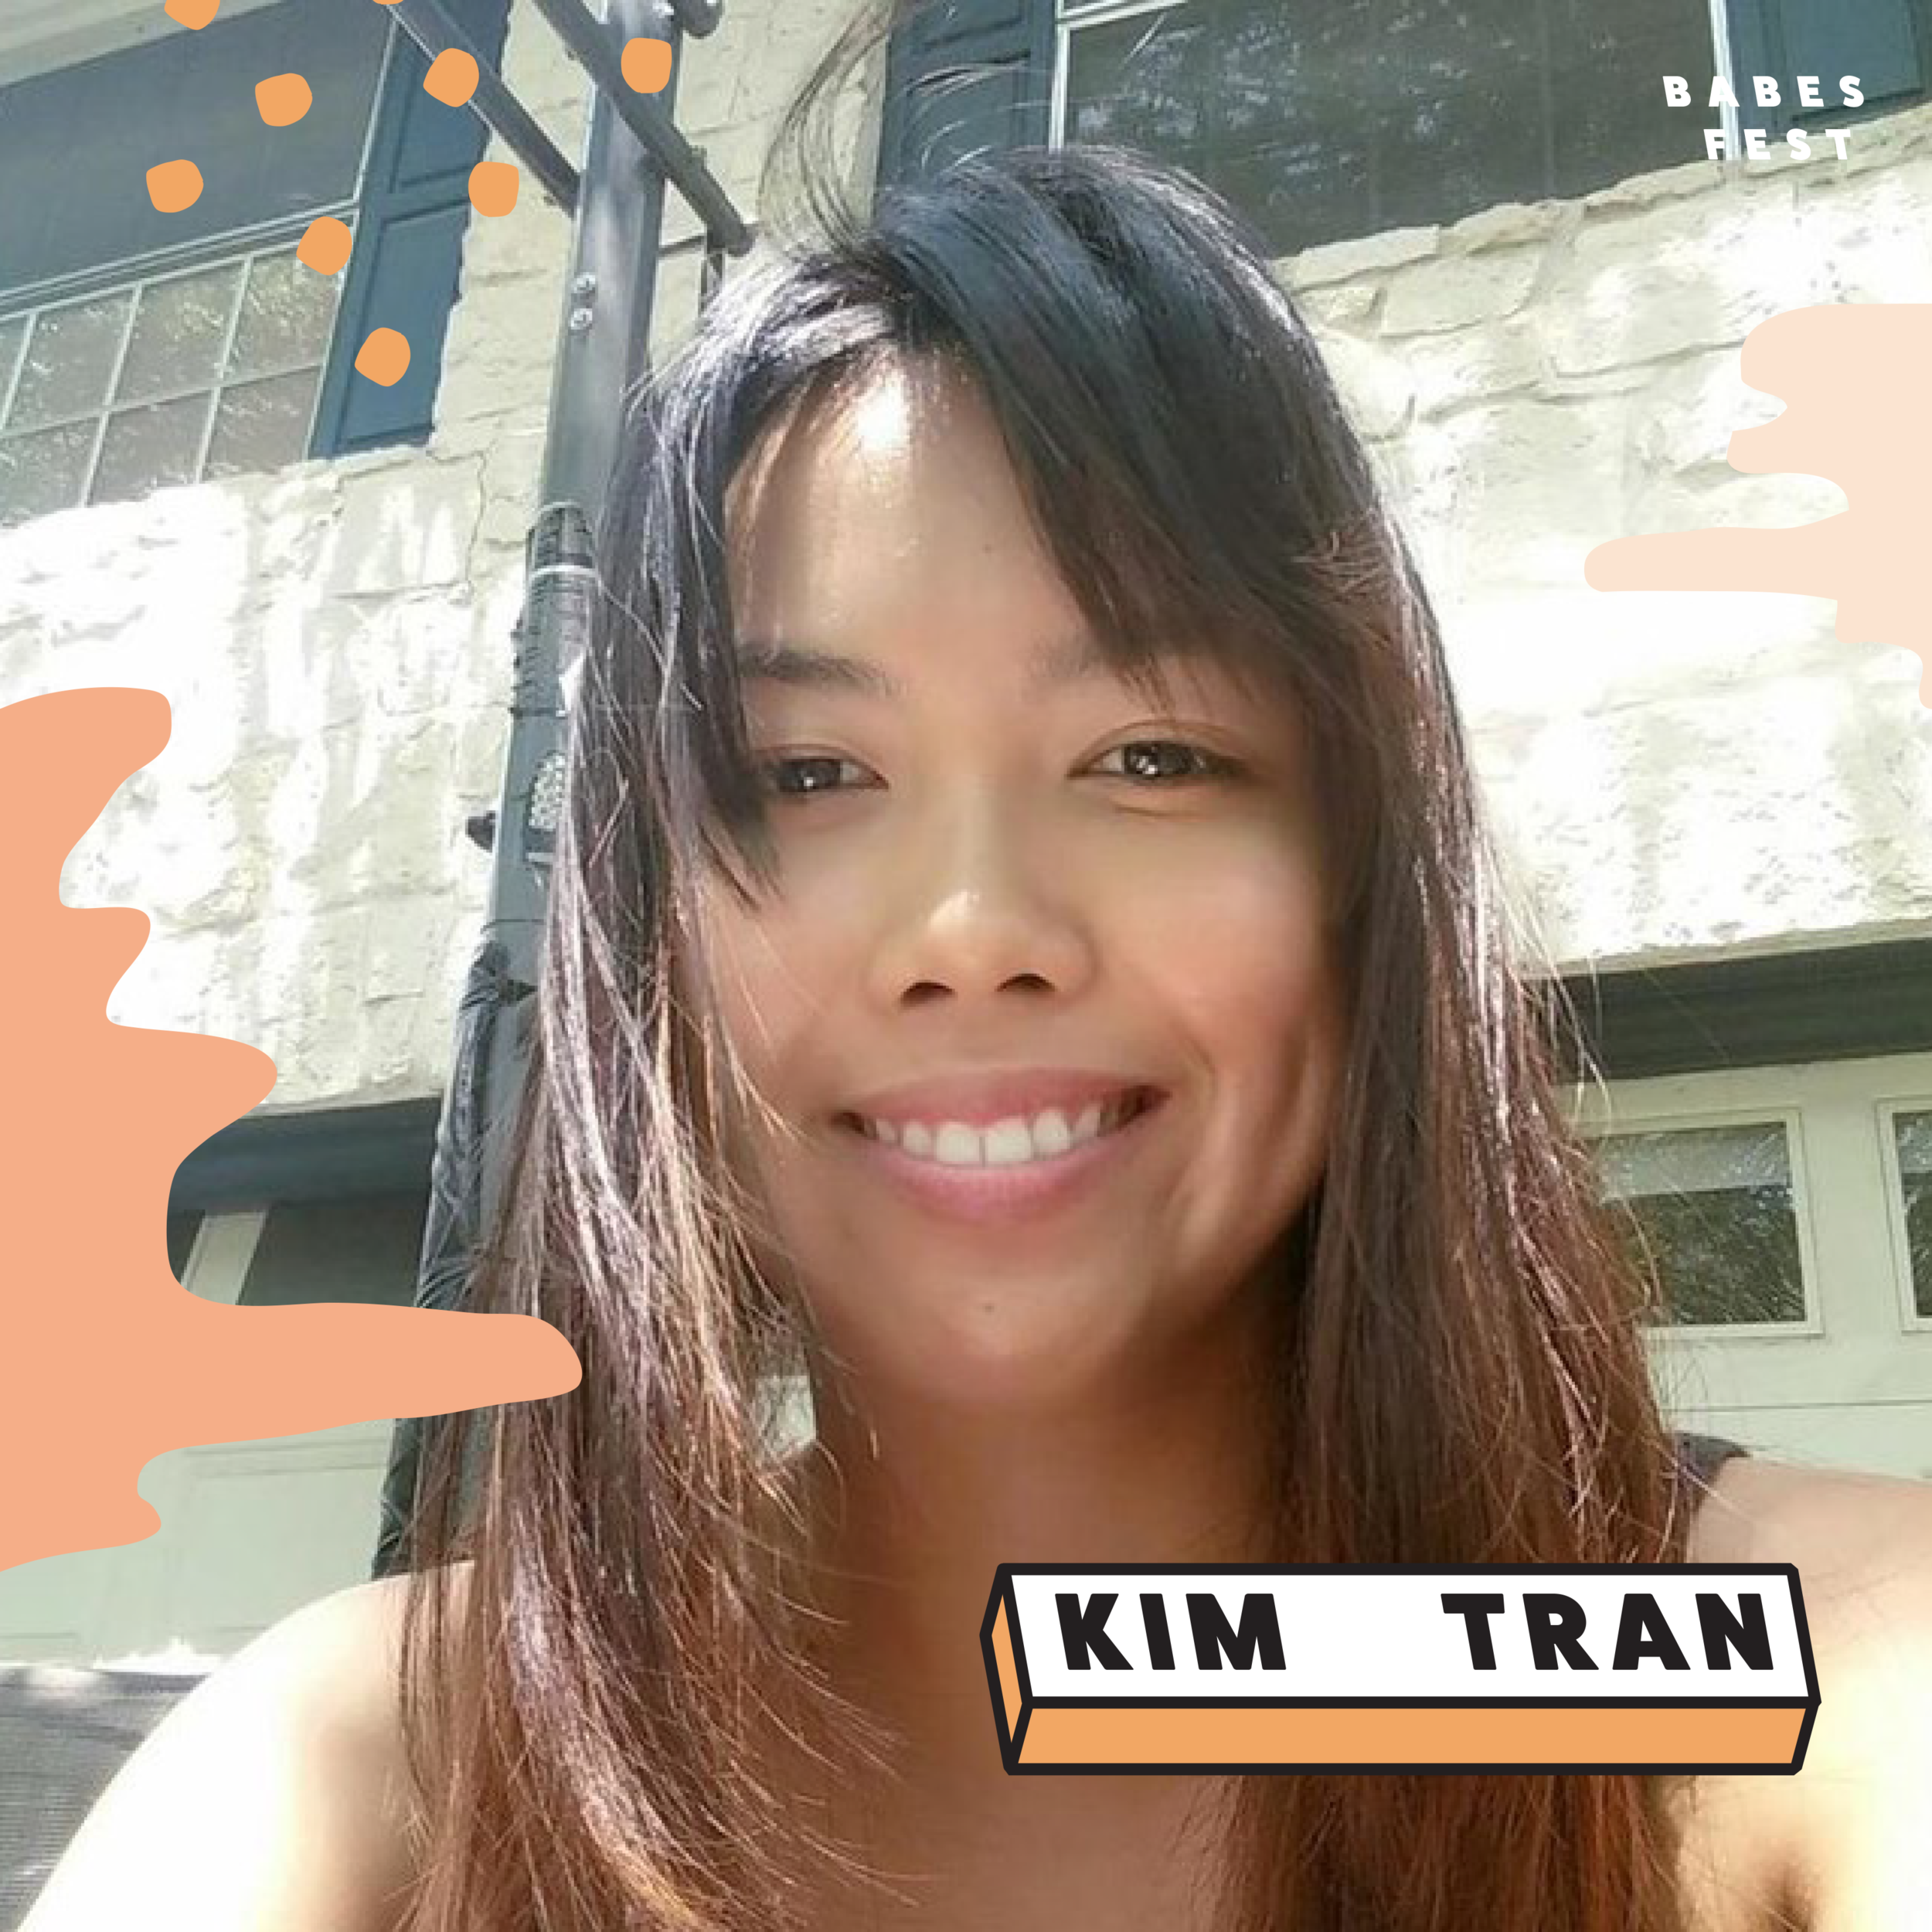 Kim Tran is a writer, actor and upcoming Michener fellow. She does improv and sketch in Austin and has written for Amy Poehler's Smart Girls. She used to rock a mohawk!